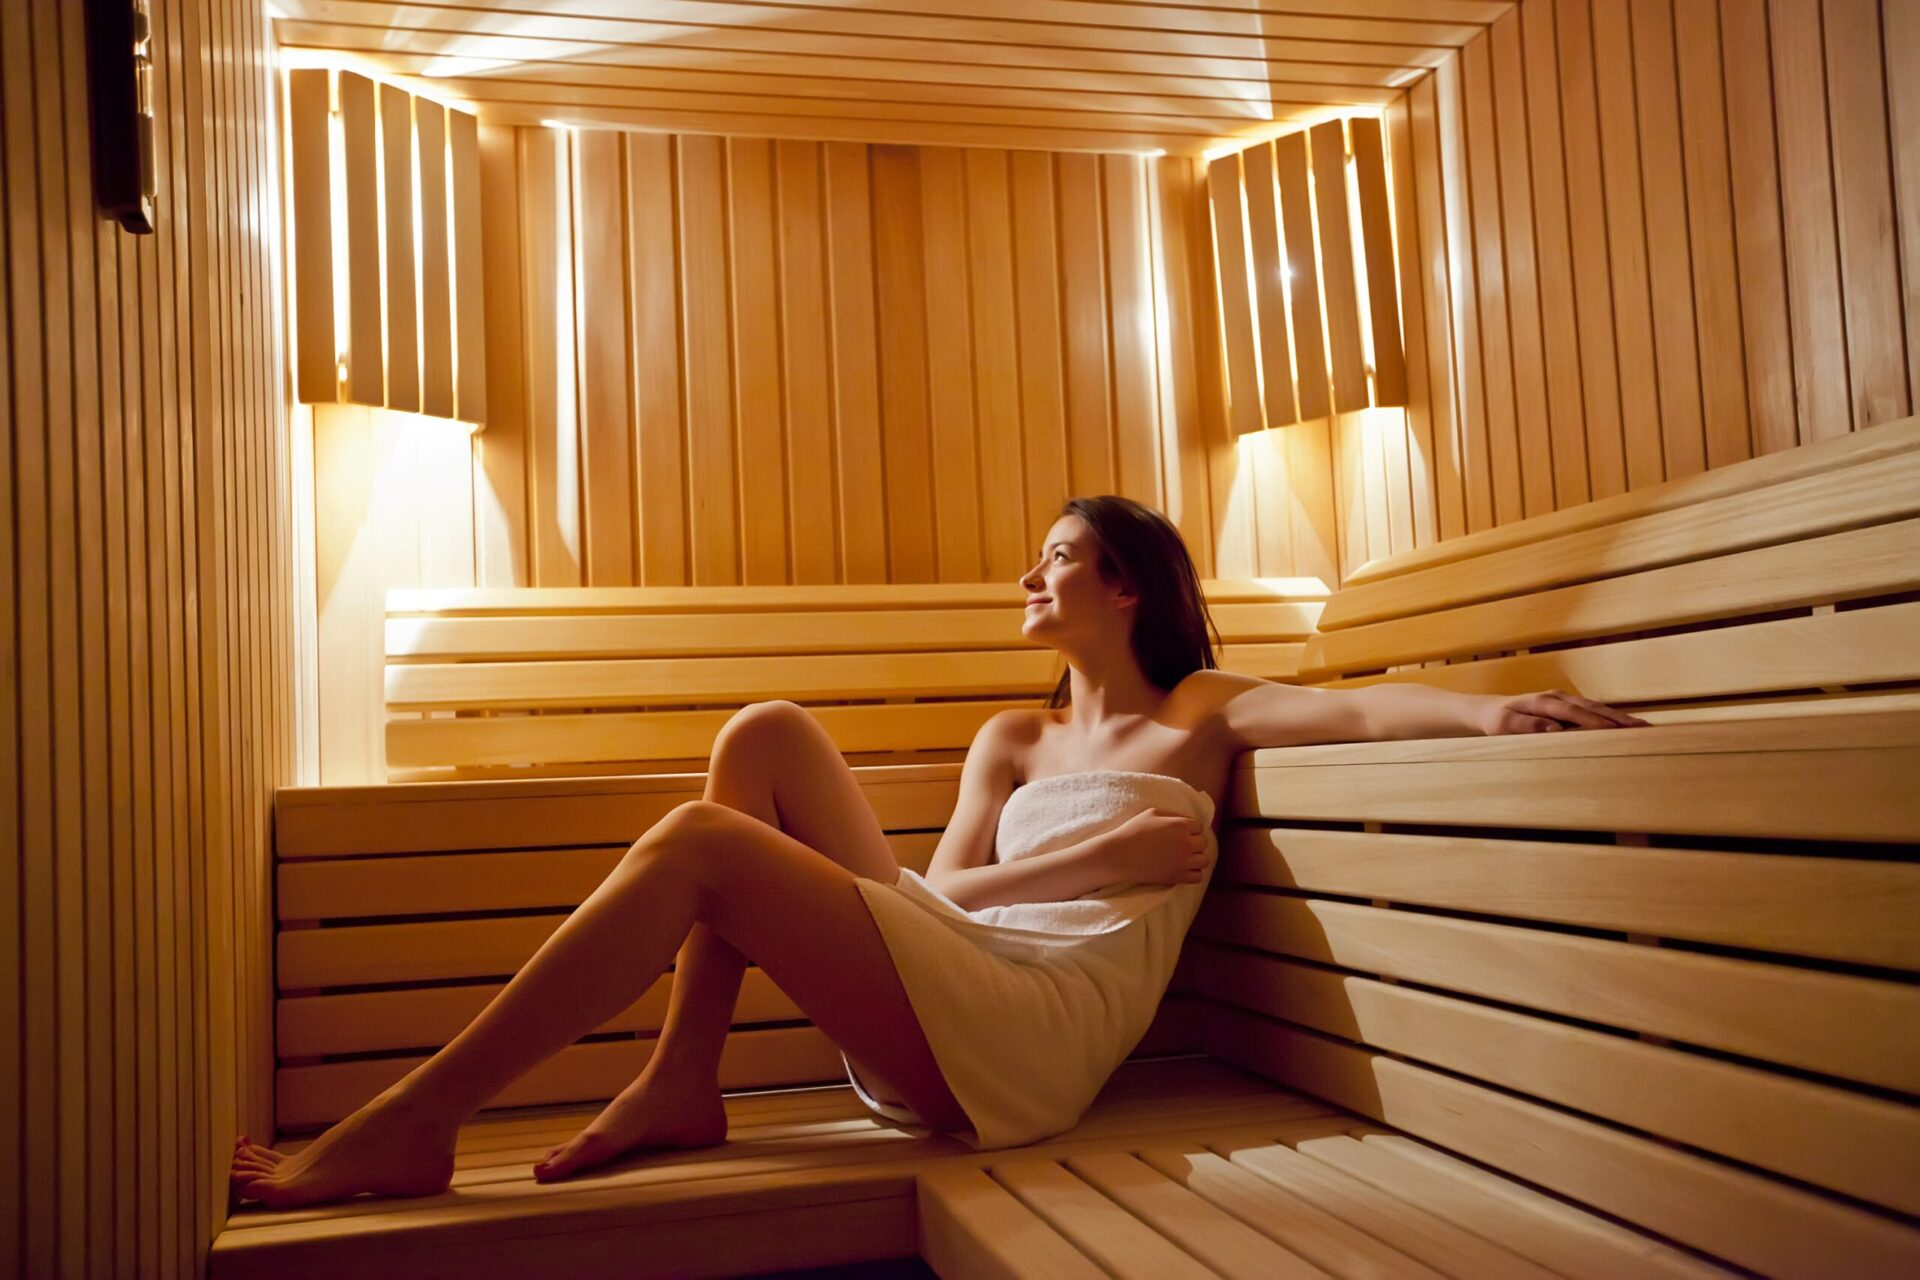 Burnette relaxing in sauna